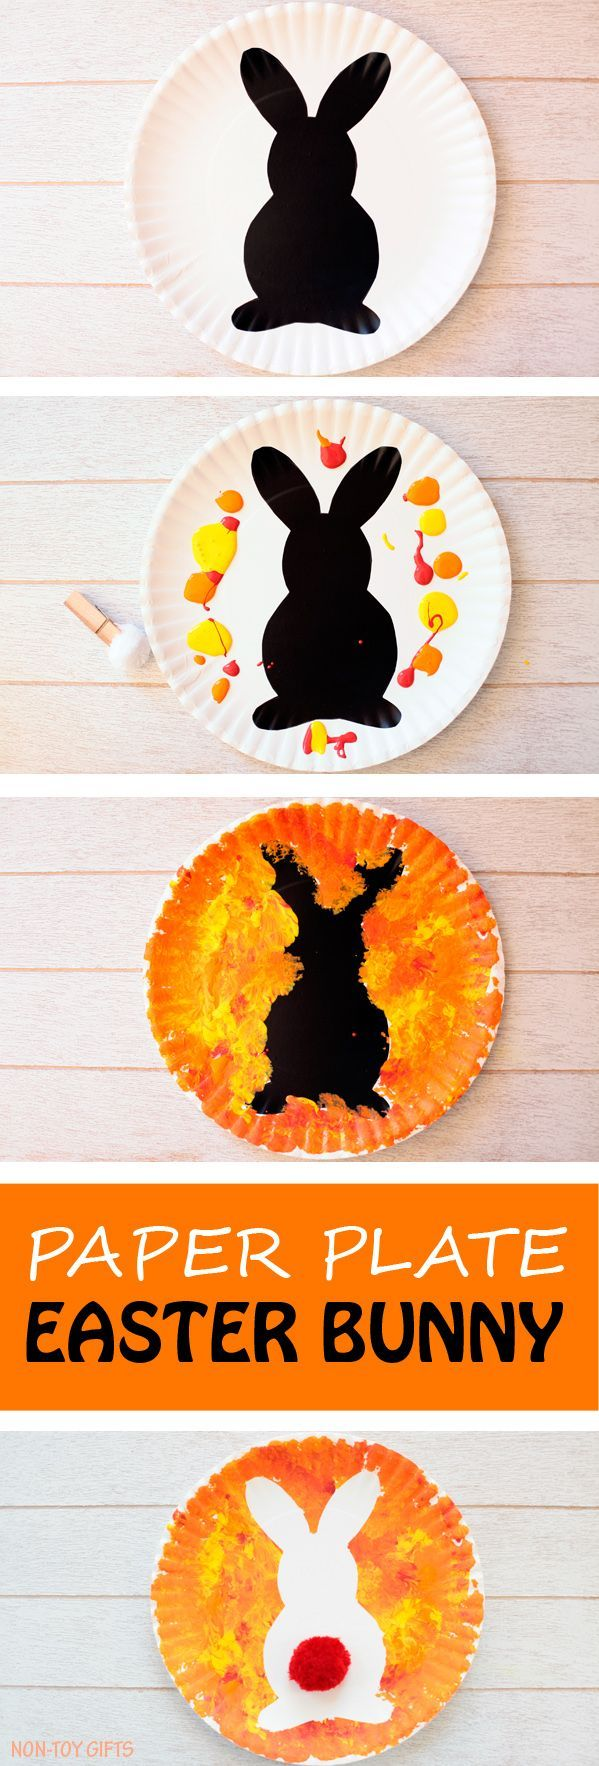 Paper plate Easter bunny craft for kids. Easy art project for toddlers, preschoolers, kindergartners and older kids. It makes a fun DIY Easter decoration. Spring rabbit craft. | at Non-Toy Gifts